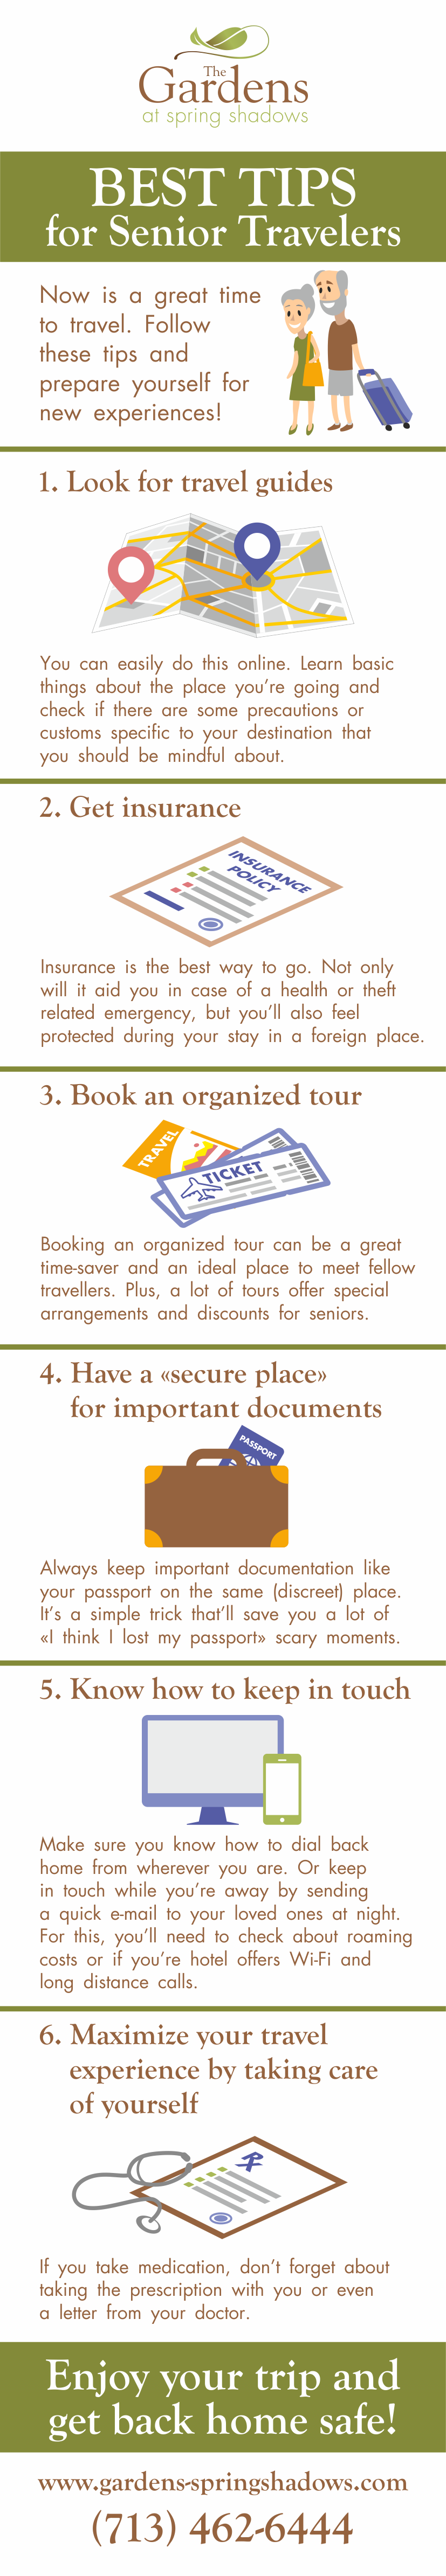 Practical Tips for Senior Travelers - Infographic